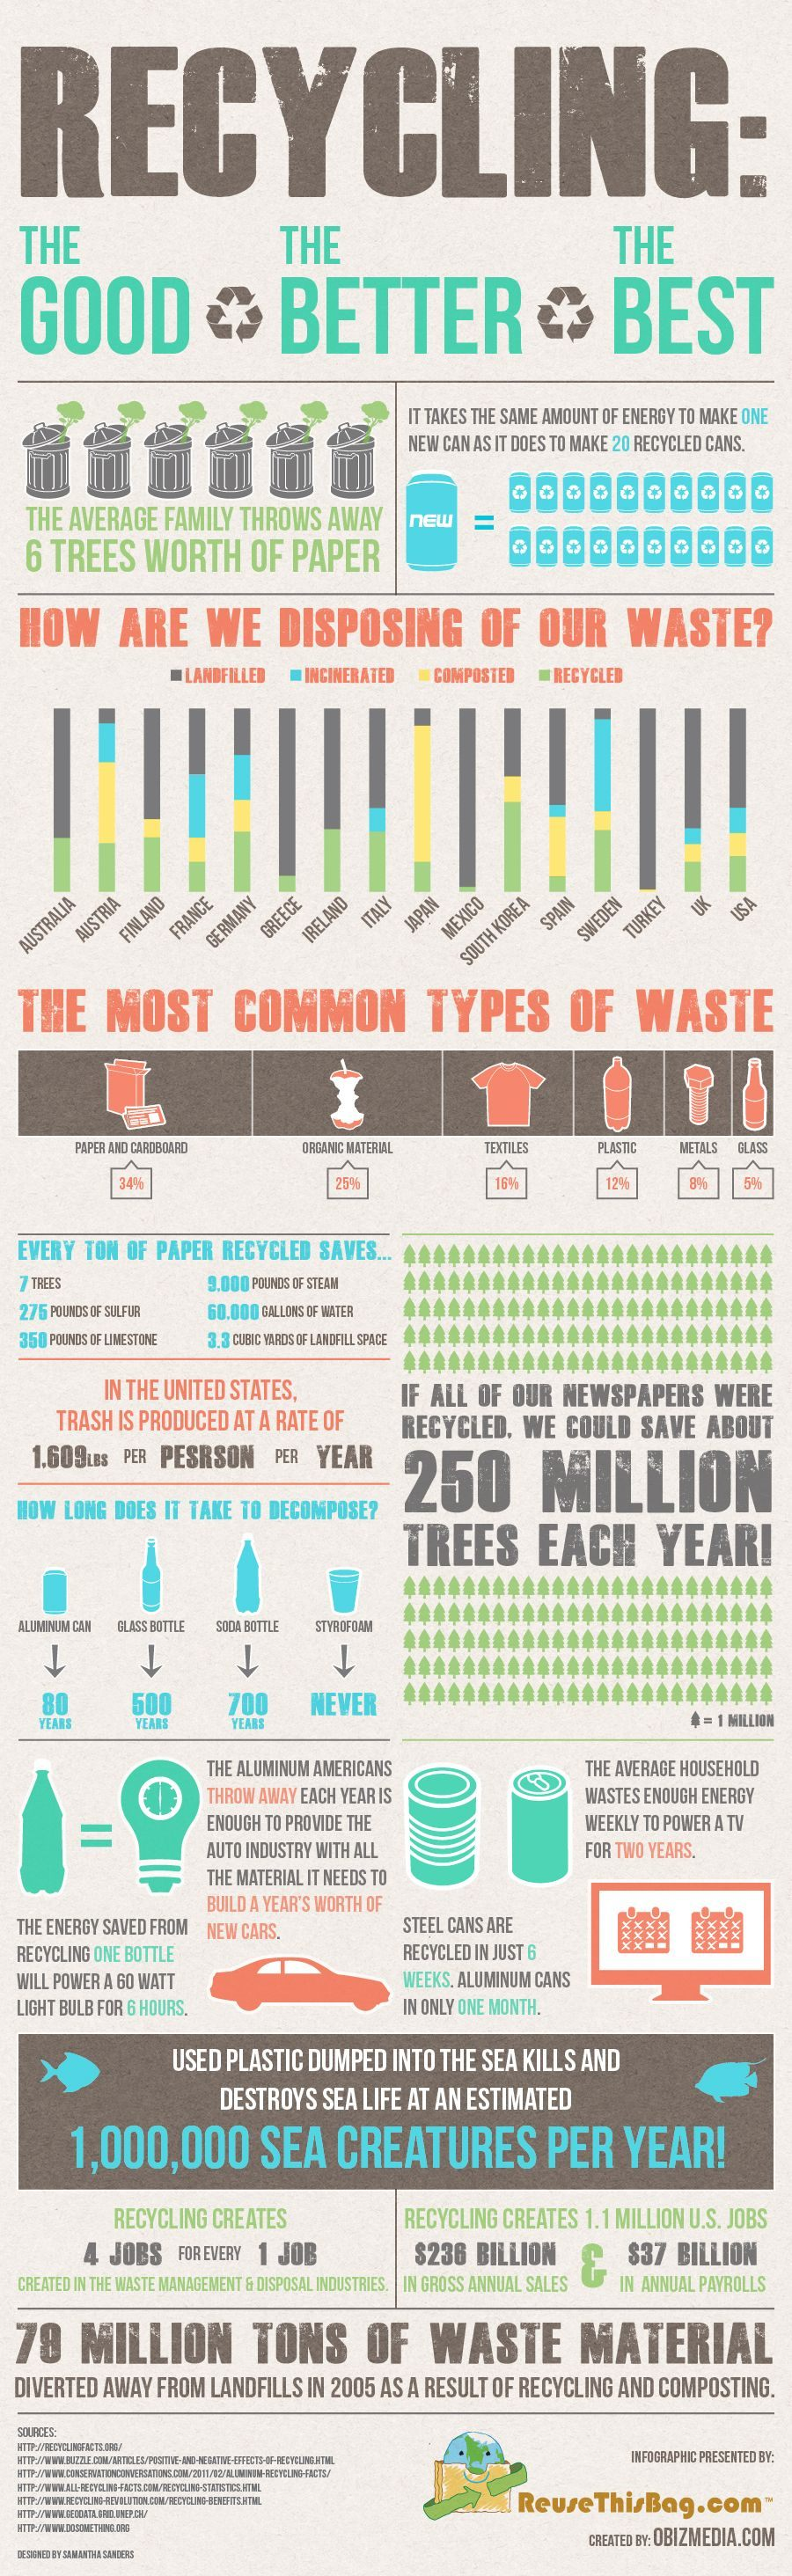 recycling the good the better and the best infographic